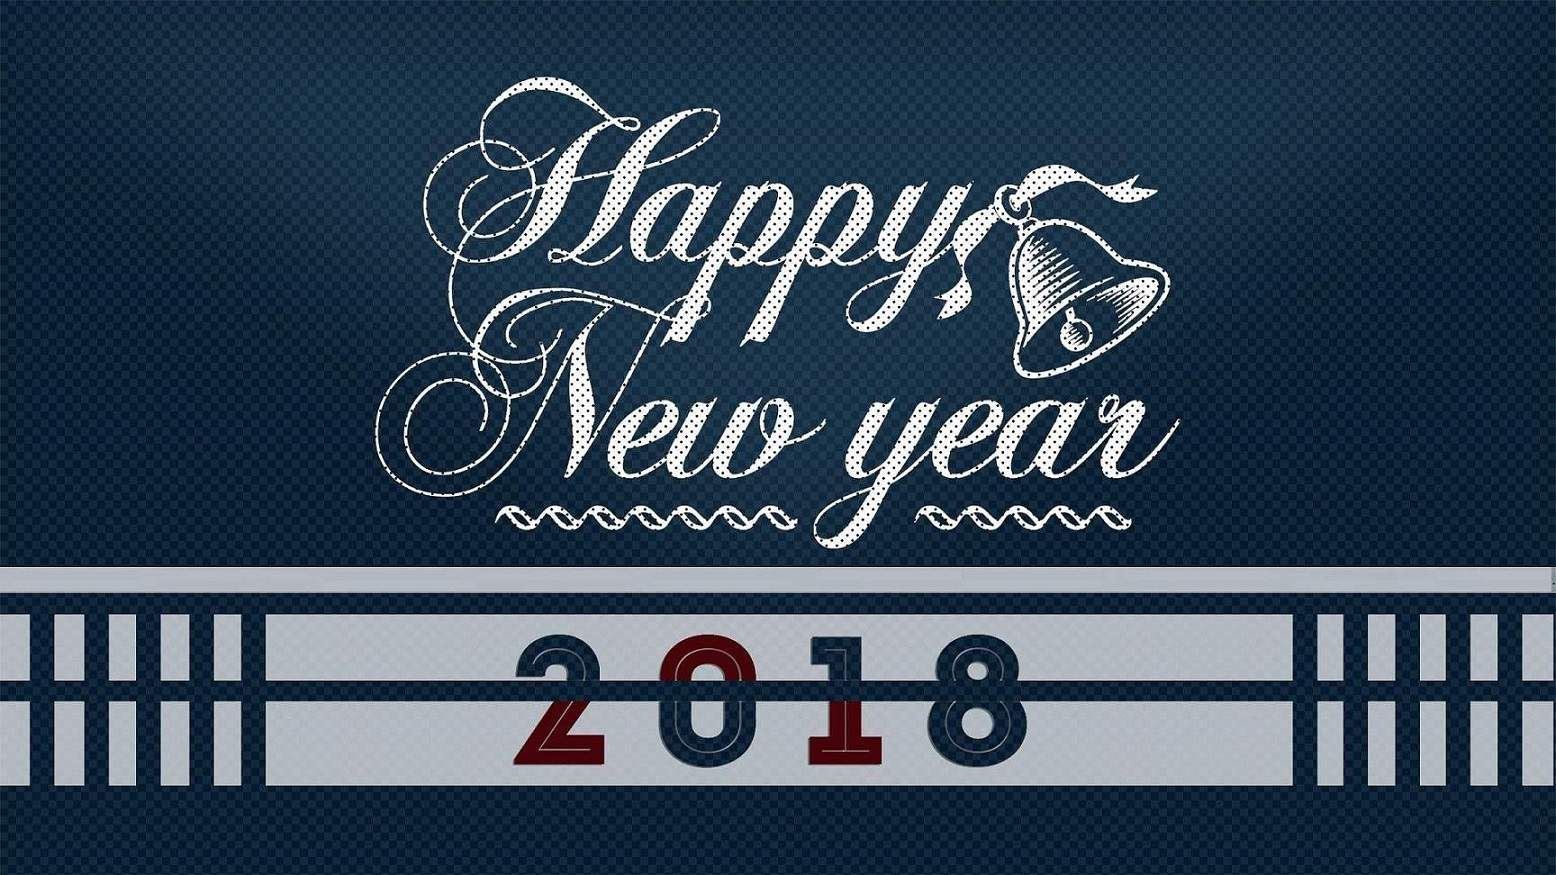 Happy new year greetings 2018 new year 2018 greetings for whatsapp hope i think 2017 will be a good year for you no problem if this is your struggle year the new year 2018 is coming for you kristyandbryce Images